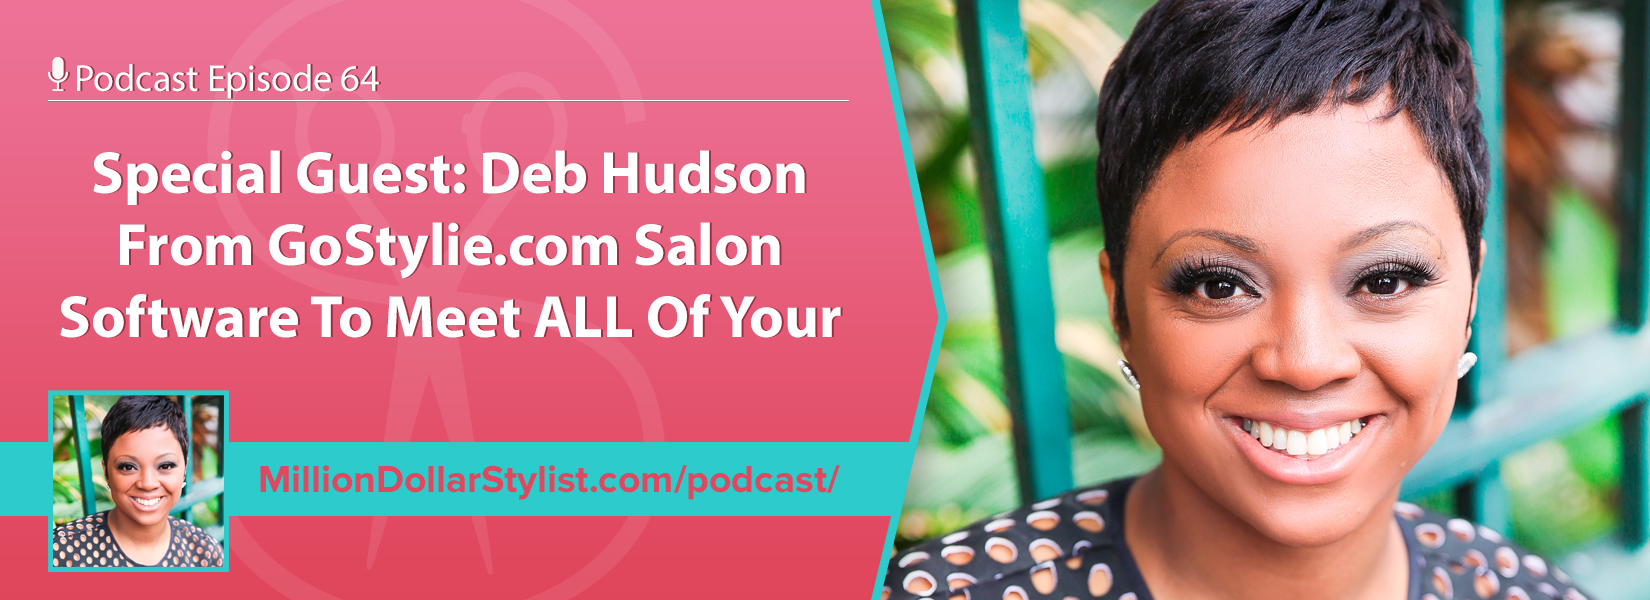 Episode 064 –  Special Guest: Deb Hudson From GoStylie.com Salon Software To Meet ALL Of Your Salon Automation Needs 1